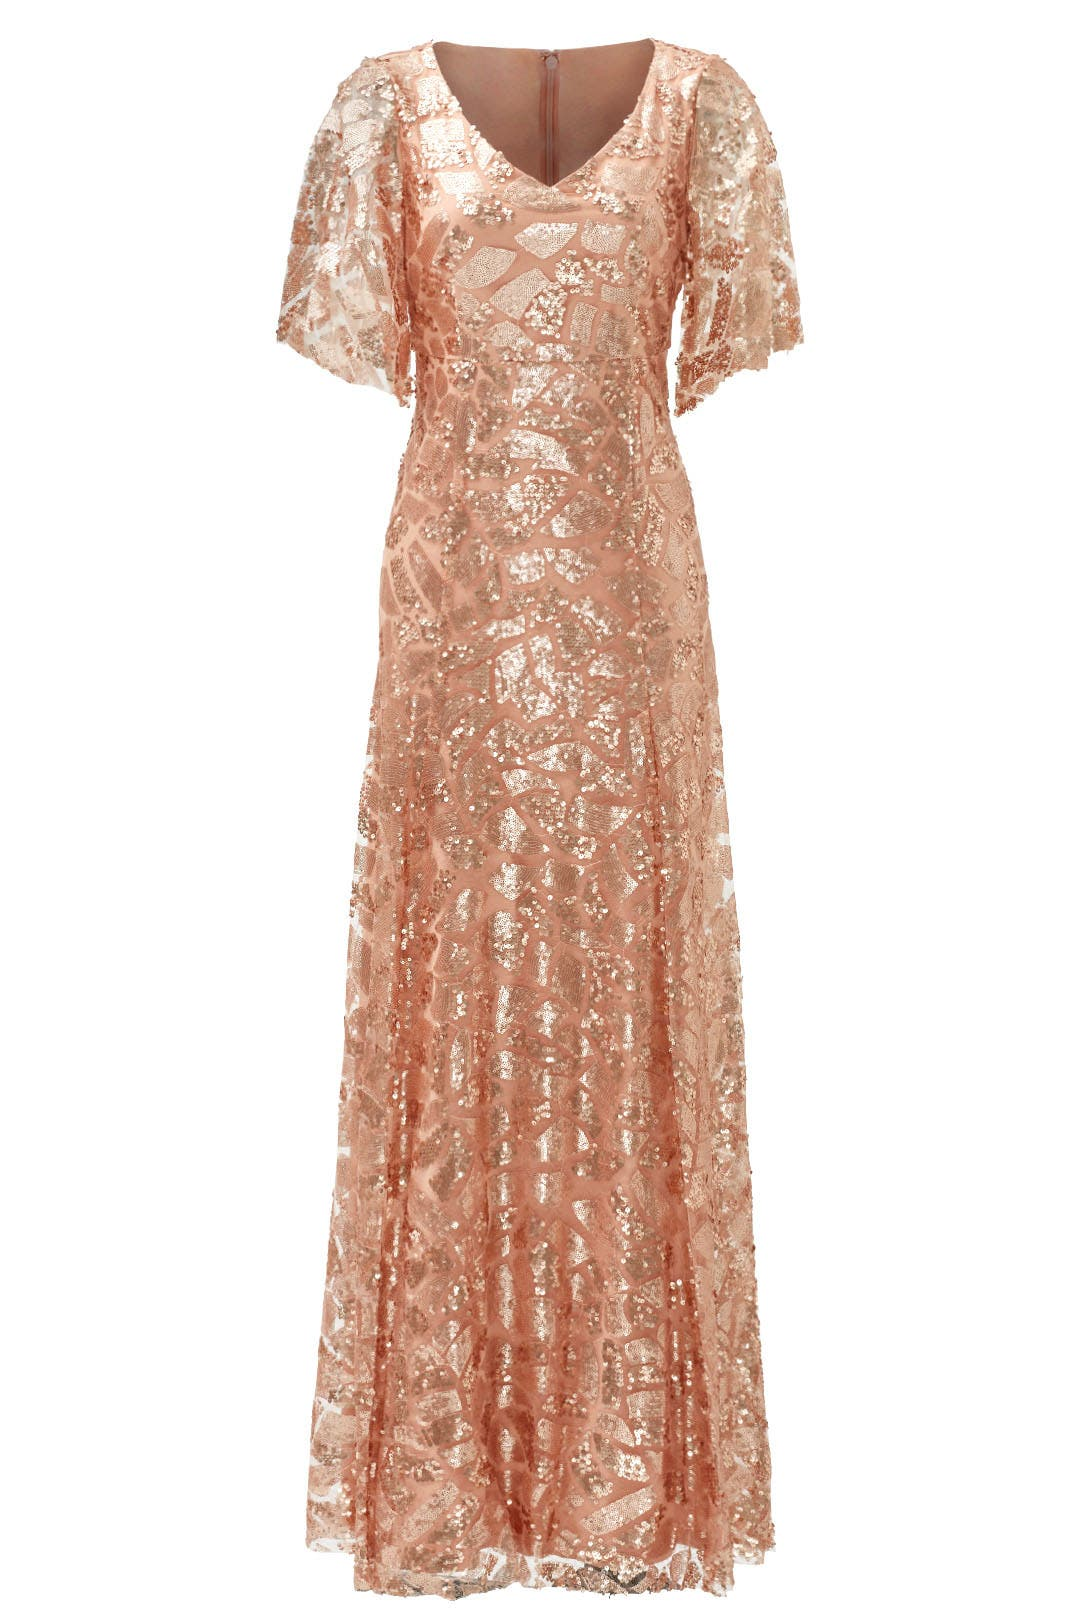 Shimmering Rose Gown by Slate & Willow for $53   Rent the Runway